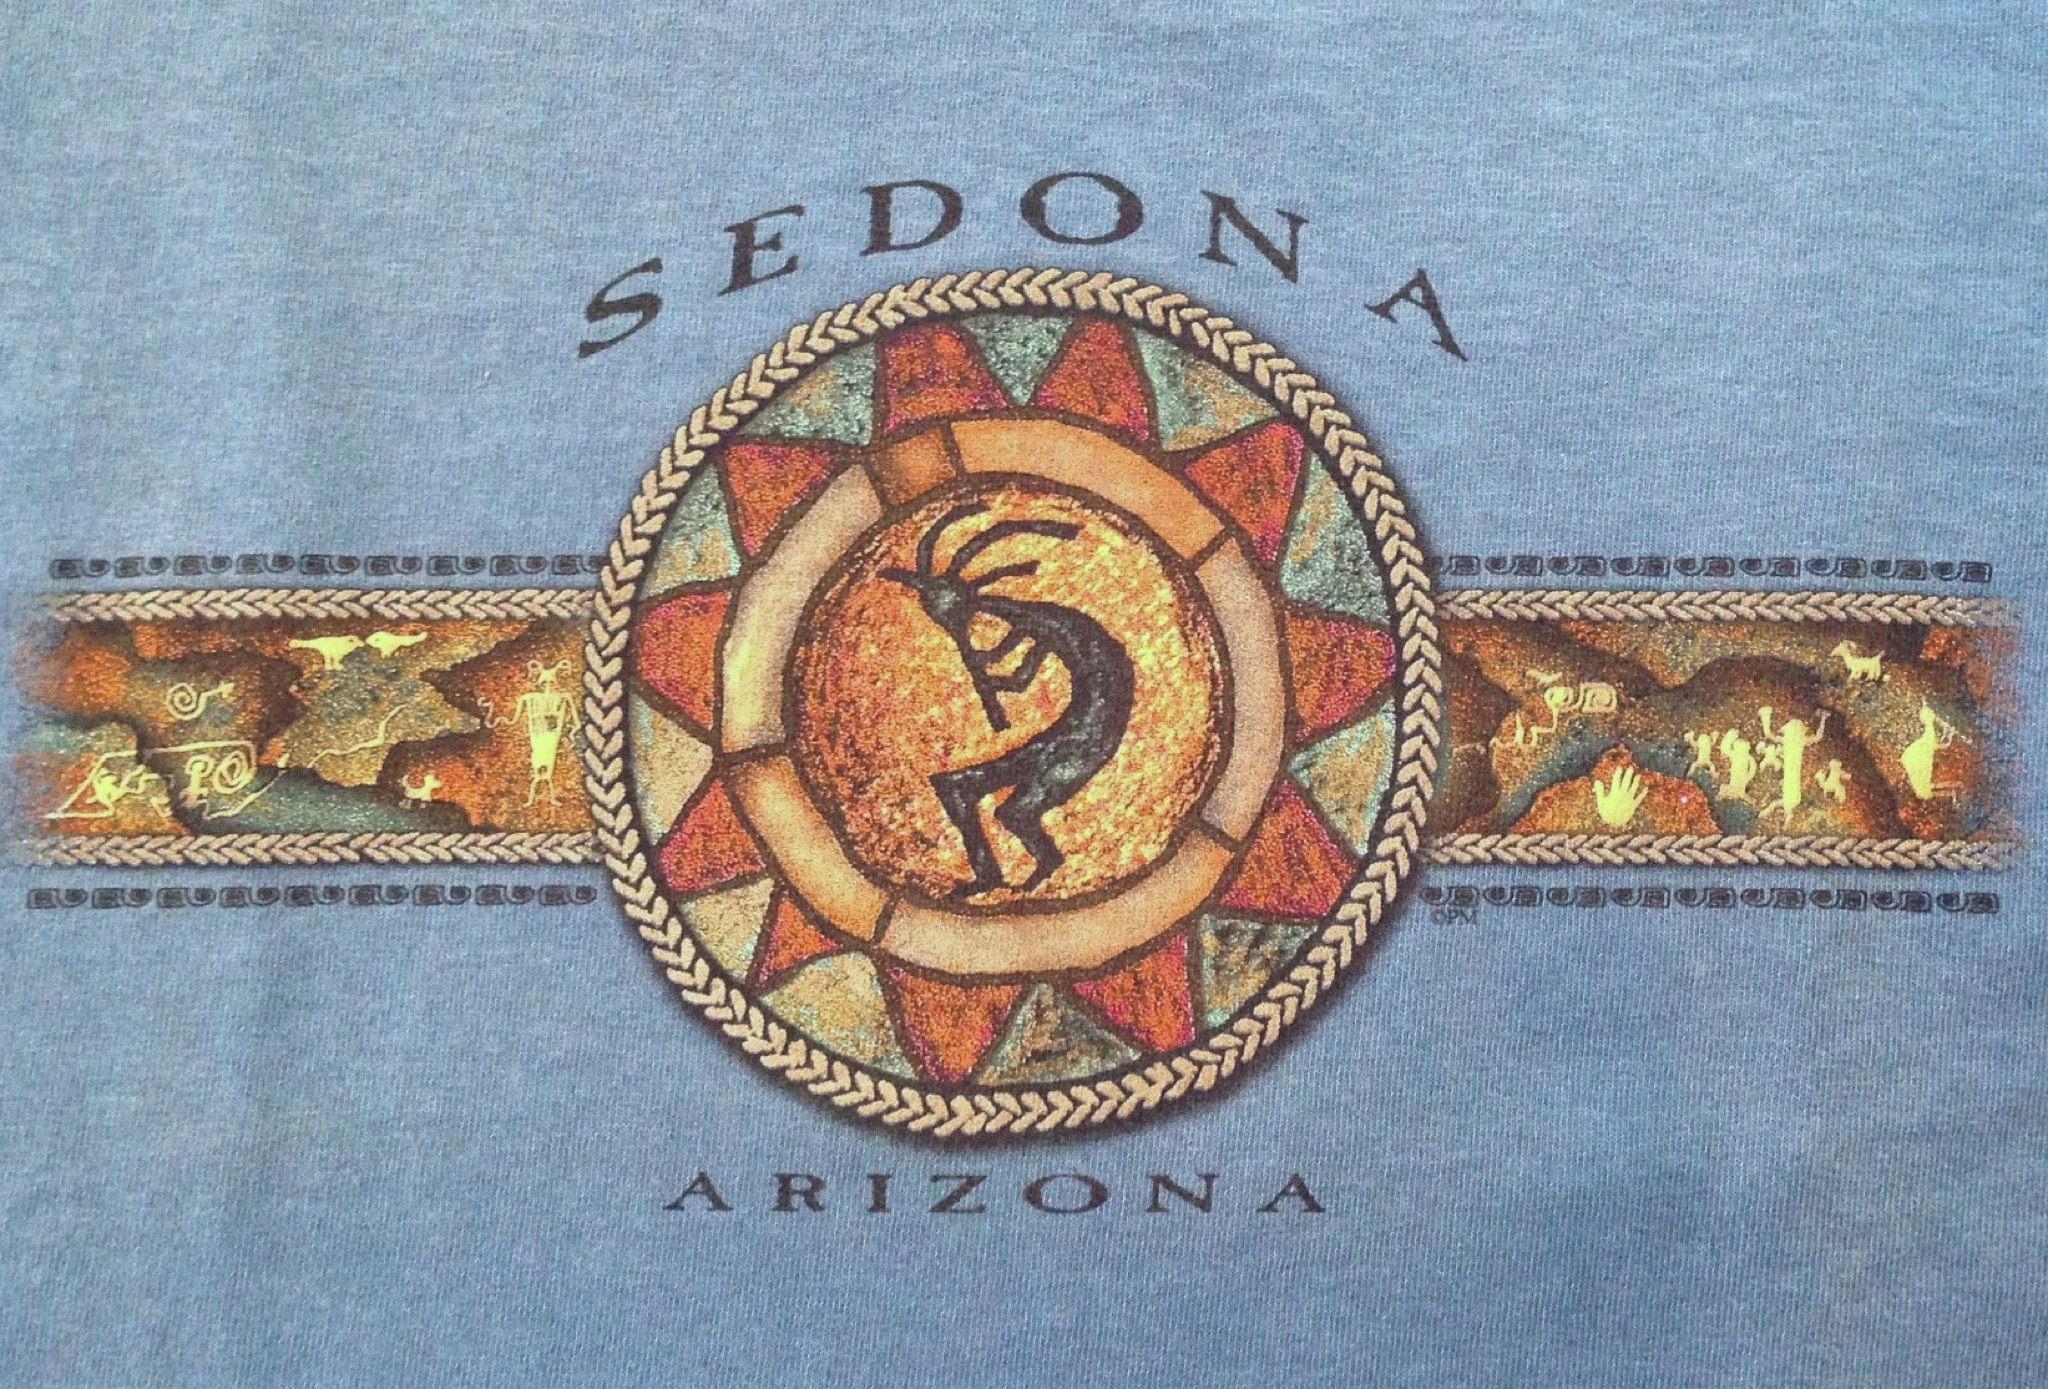 Kokopelli is a Native American petroglyph design found in Sedona and Arizona. Cotton t-shirt available in Rust and Blue.